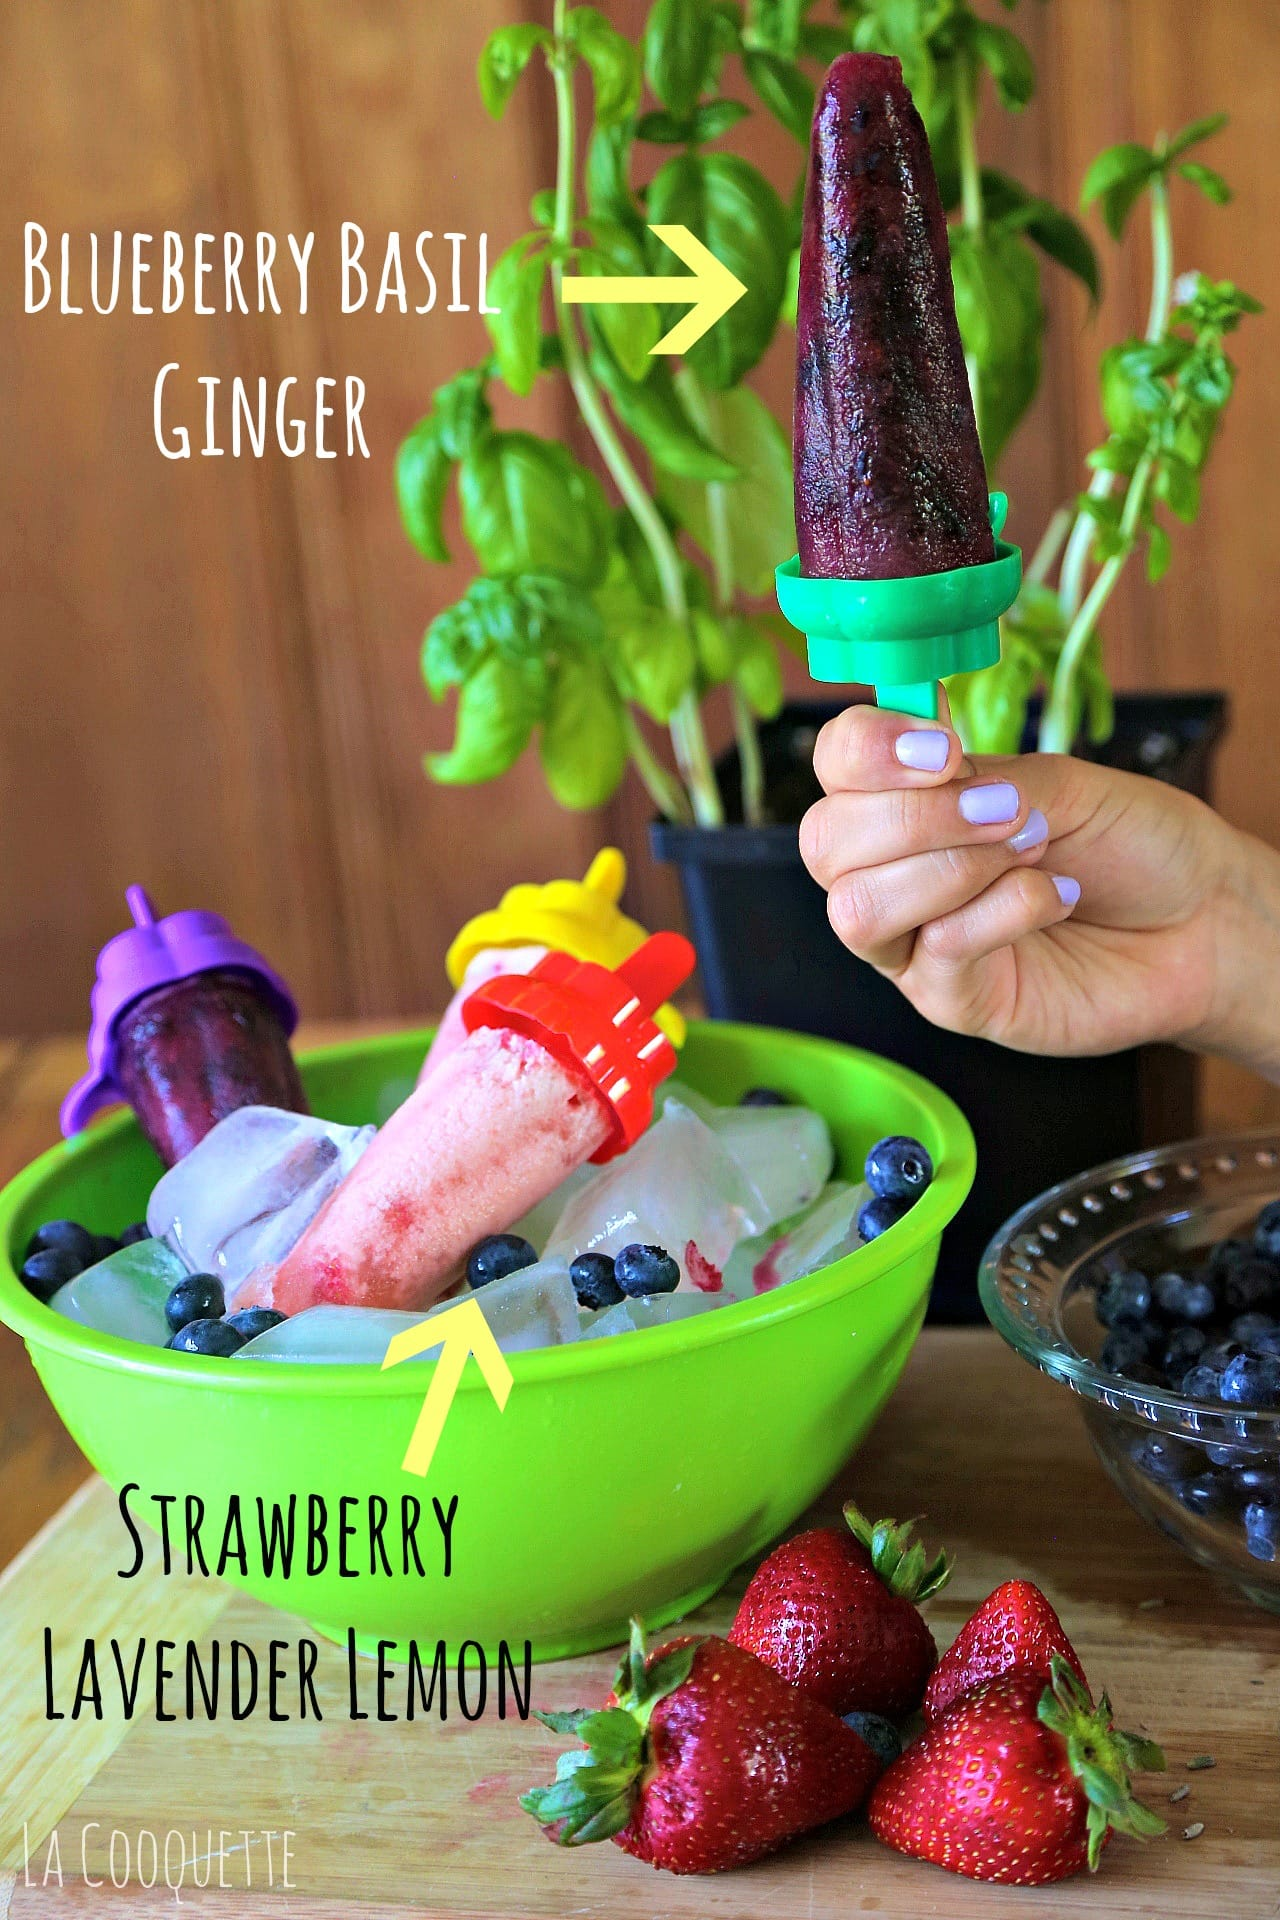 ... -blueberry-basil-strawberry-lavender-herb-infused-popsicles-arrows2